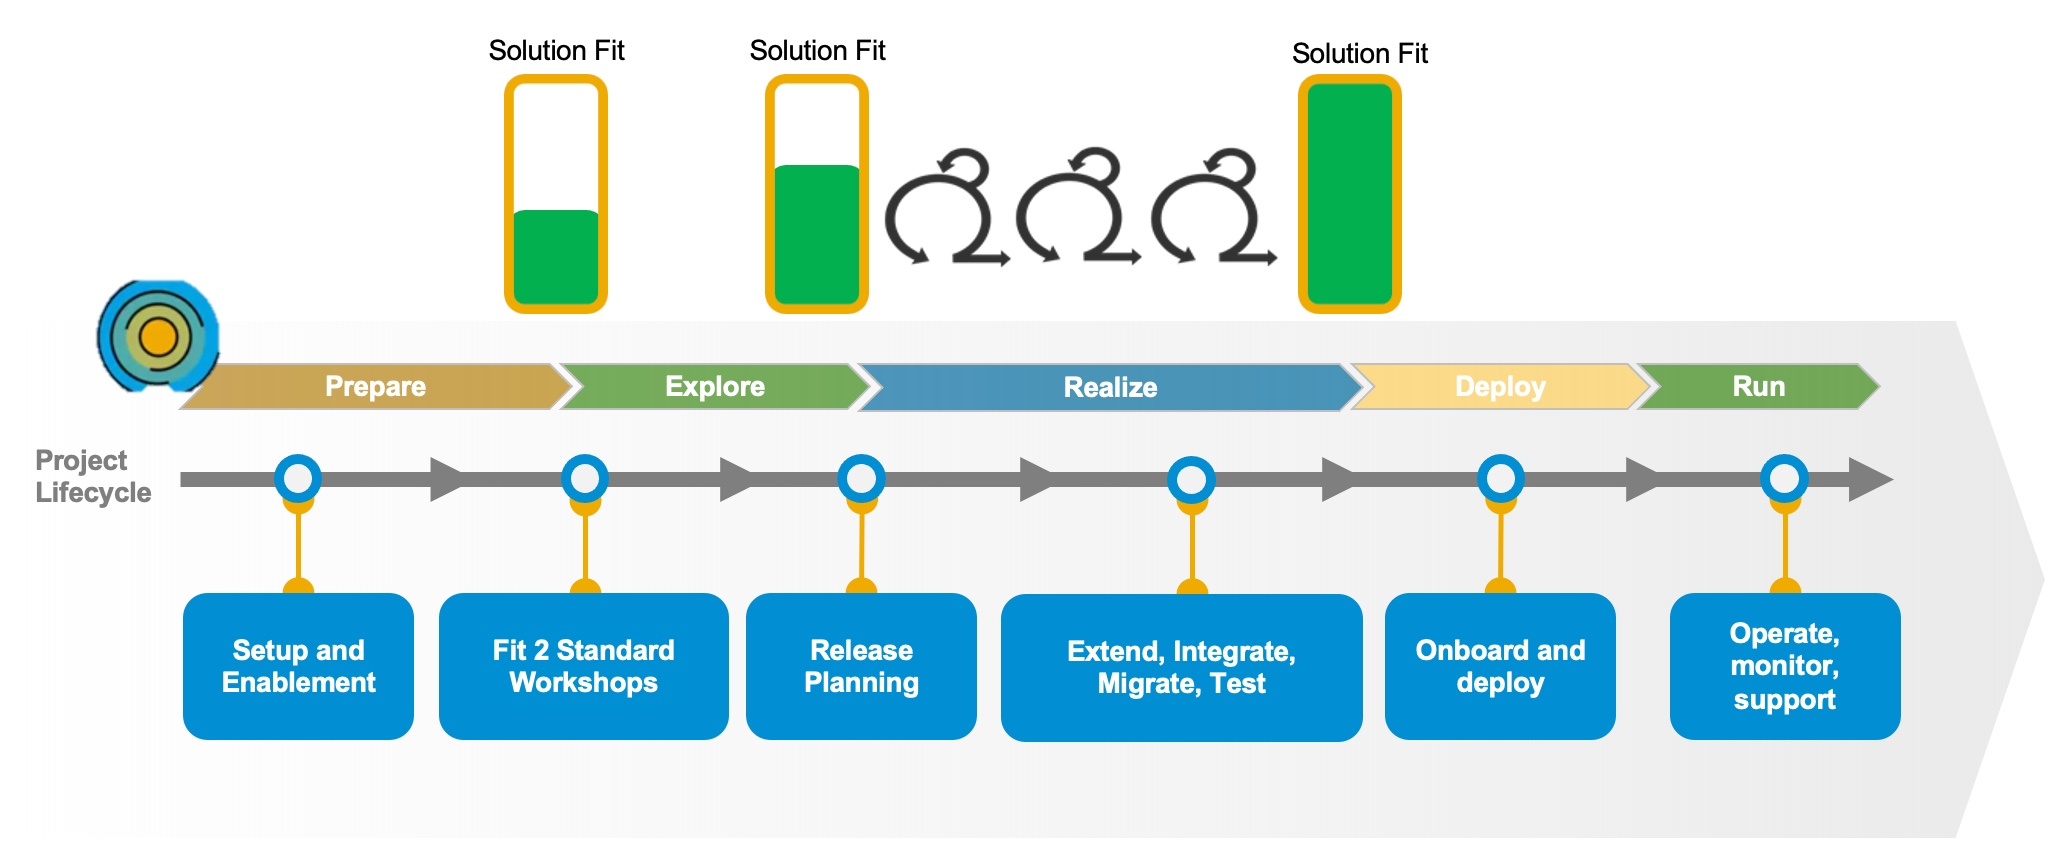 SAP%20Activate%20has%20iterations%20across%20all%20phases